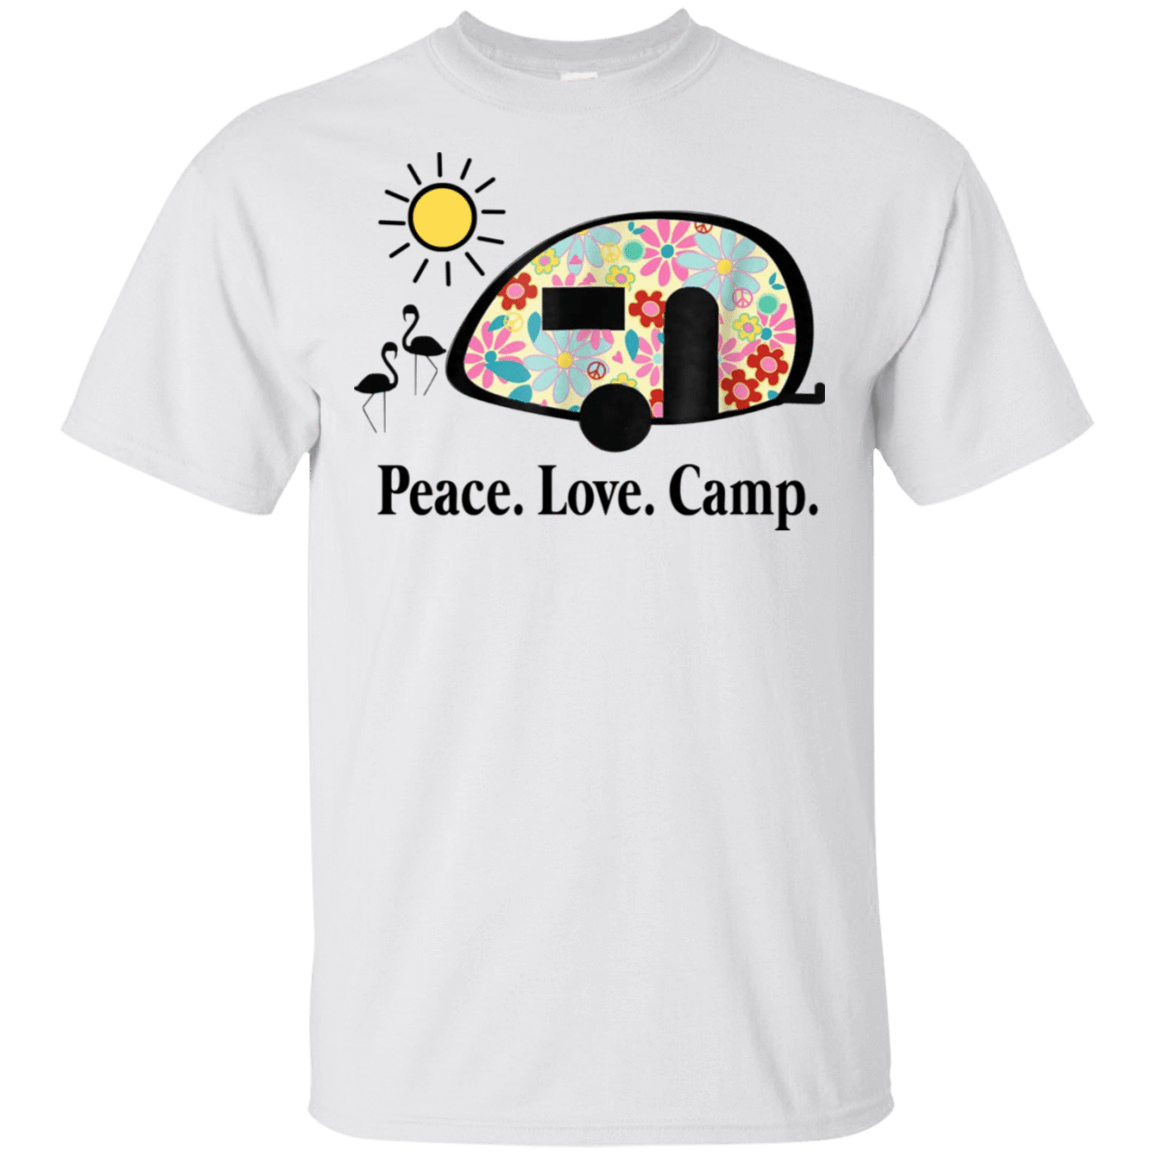 Peace. Love. Camp. Camping 22-114-73889463-253 - Tee Ript